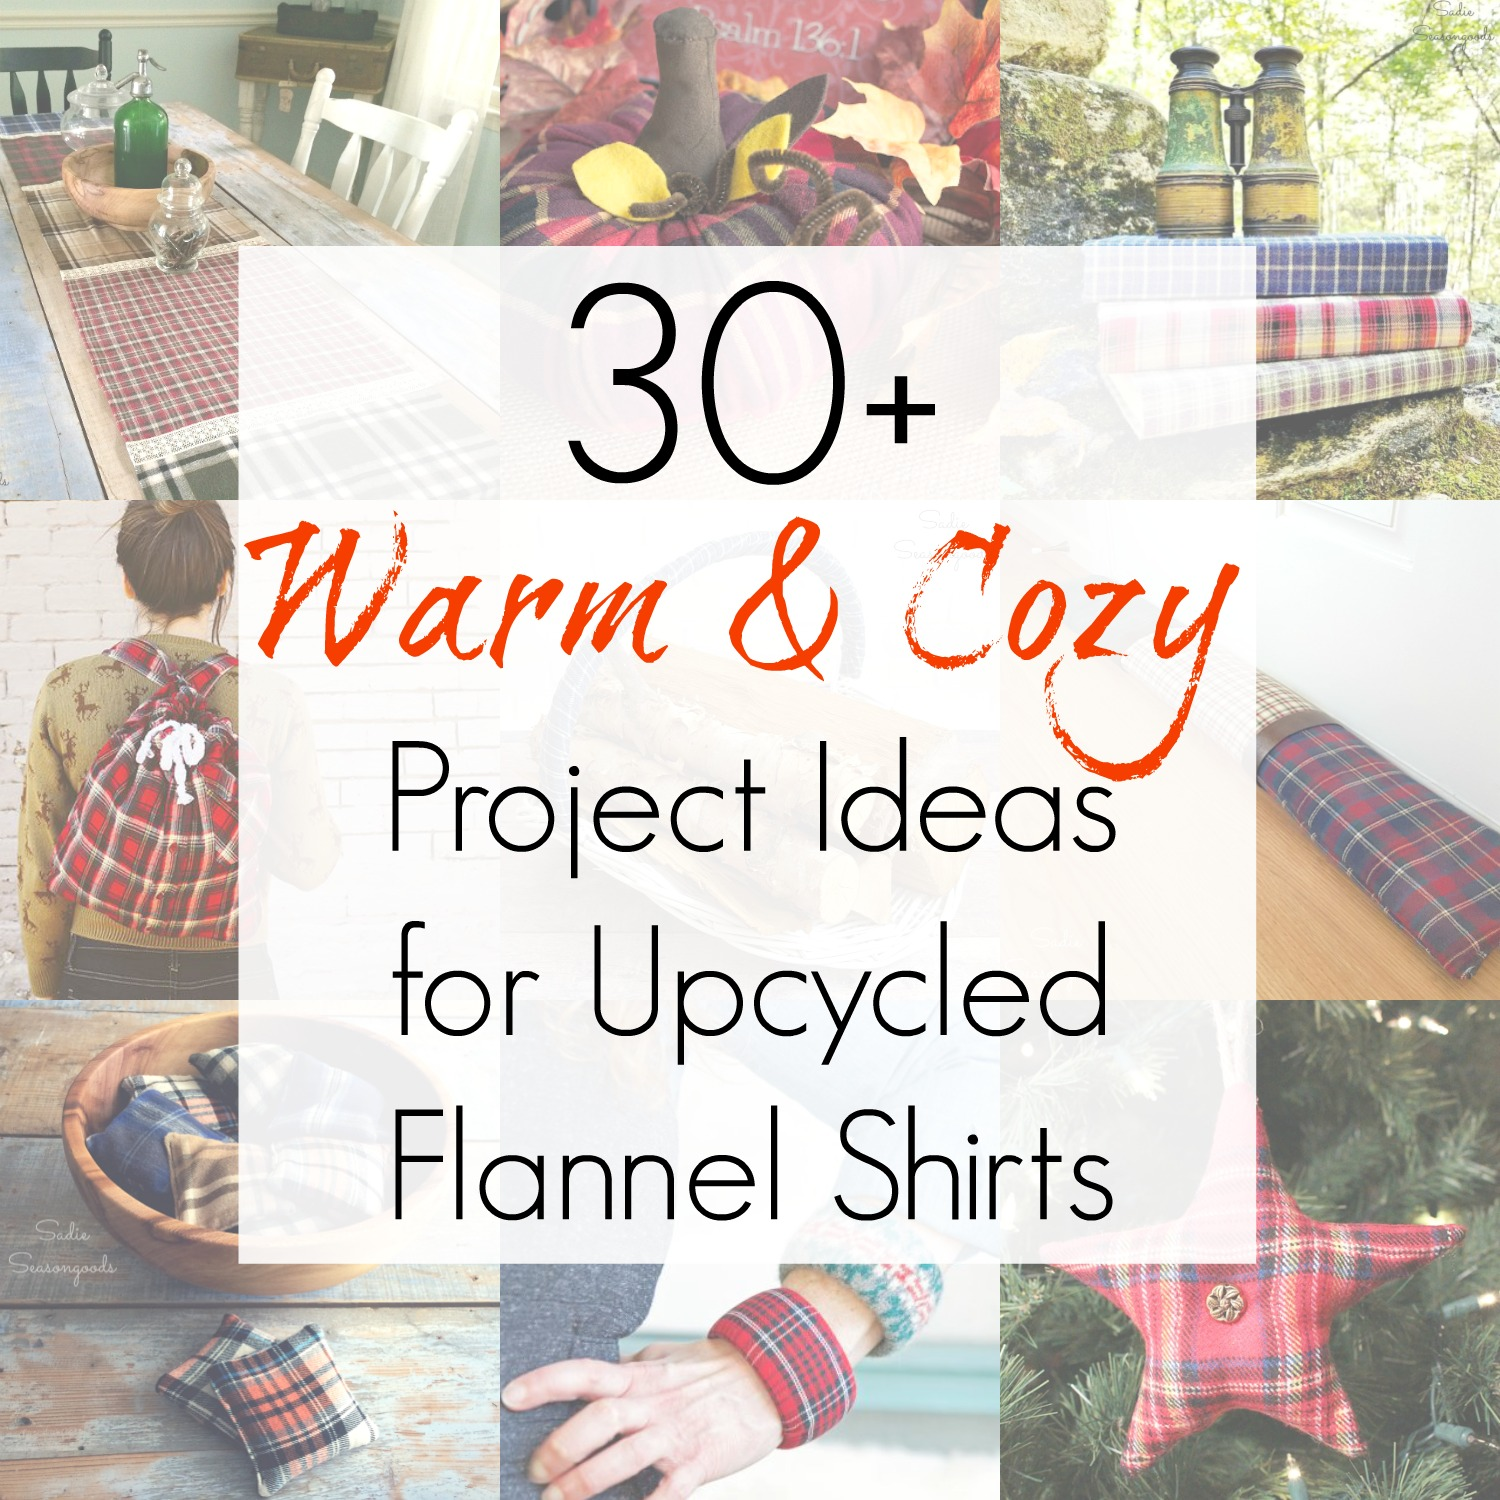 Upcycling ideas and upcycling clothes that use flannel fabric or mens flannel shirts for sewing projects and crafts as compiled by Sadie Seasongoods